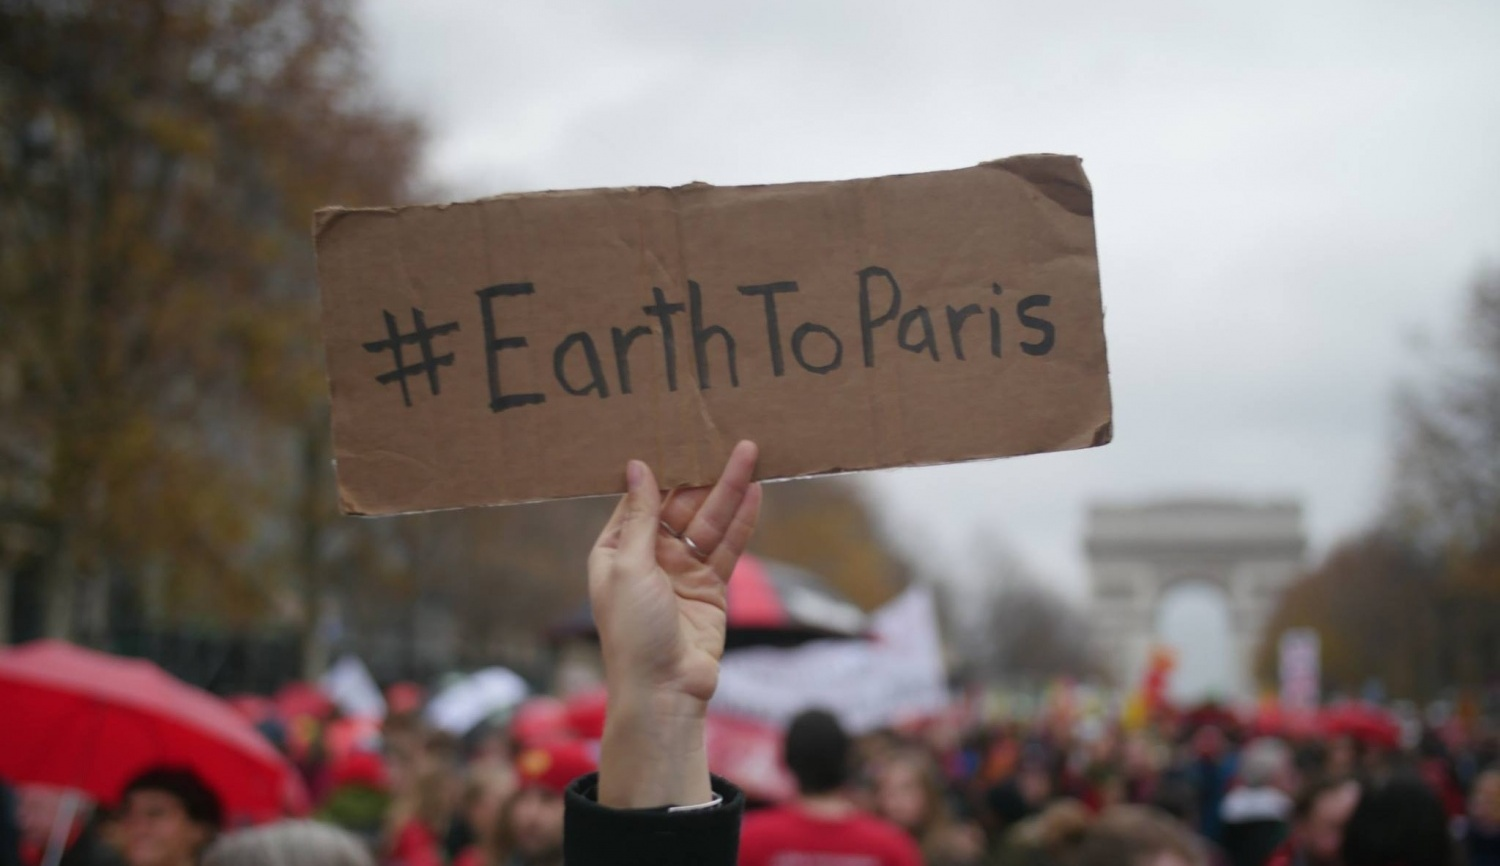 earthtoparis cop21 valhalla movement